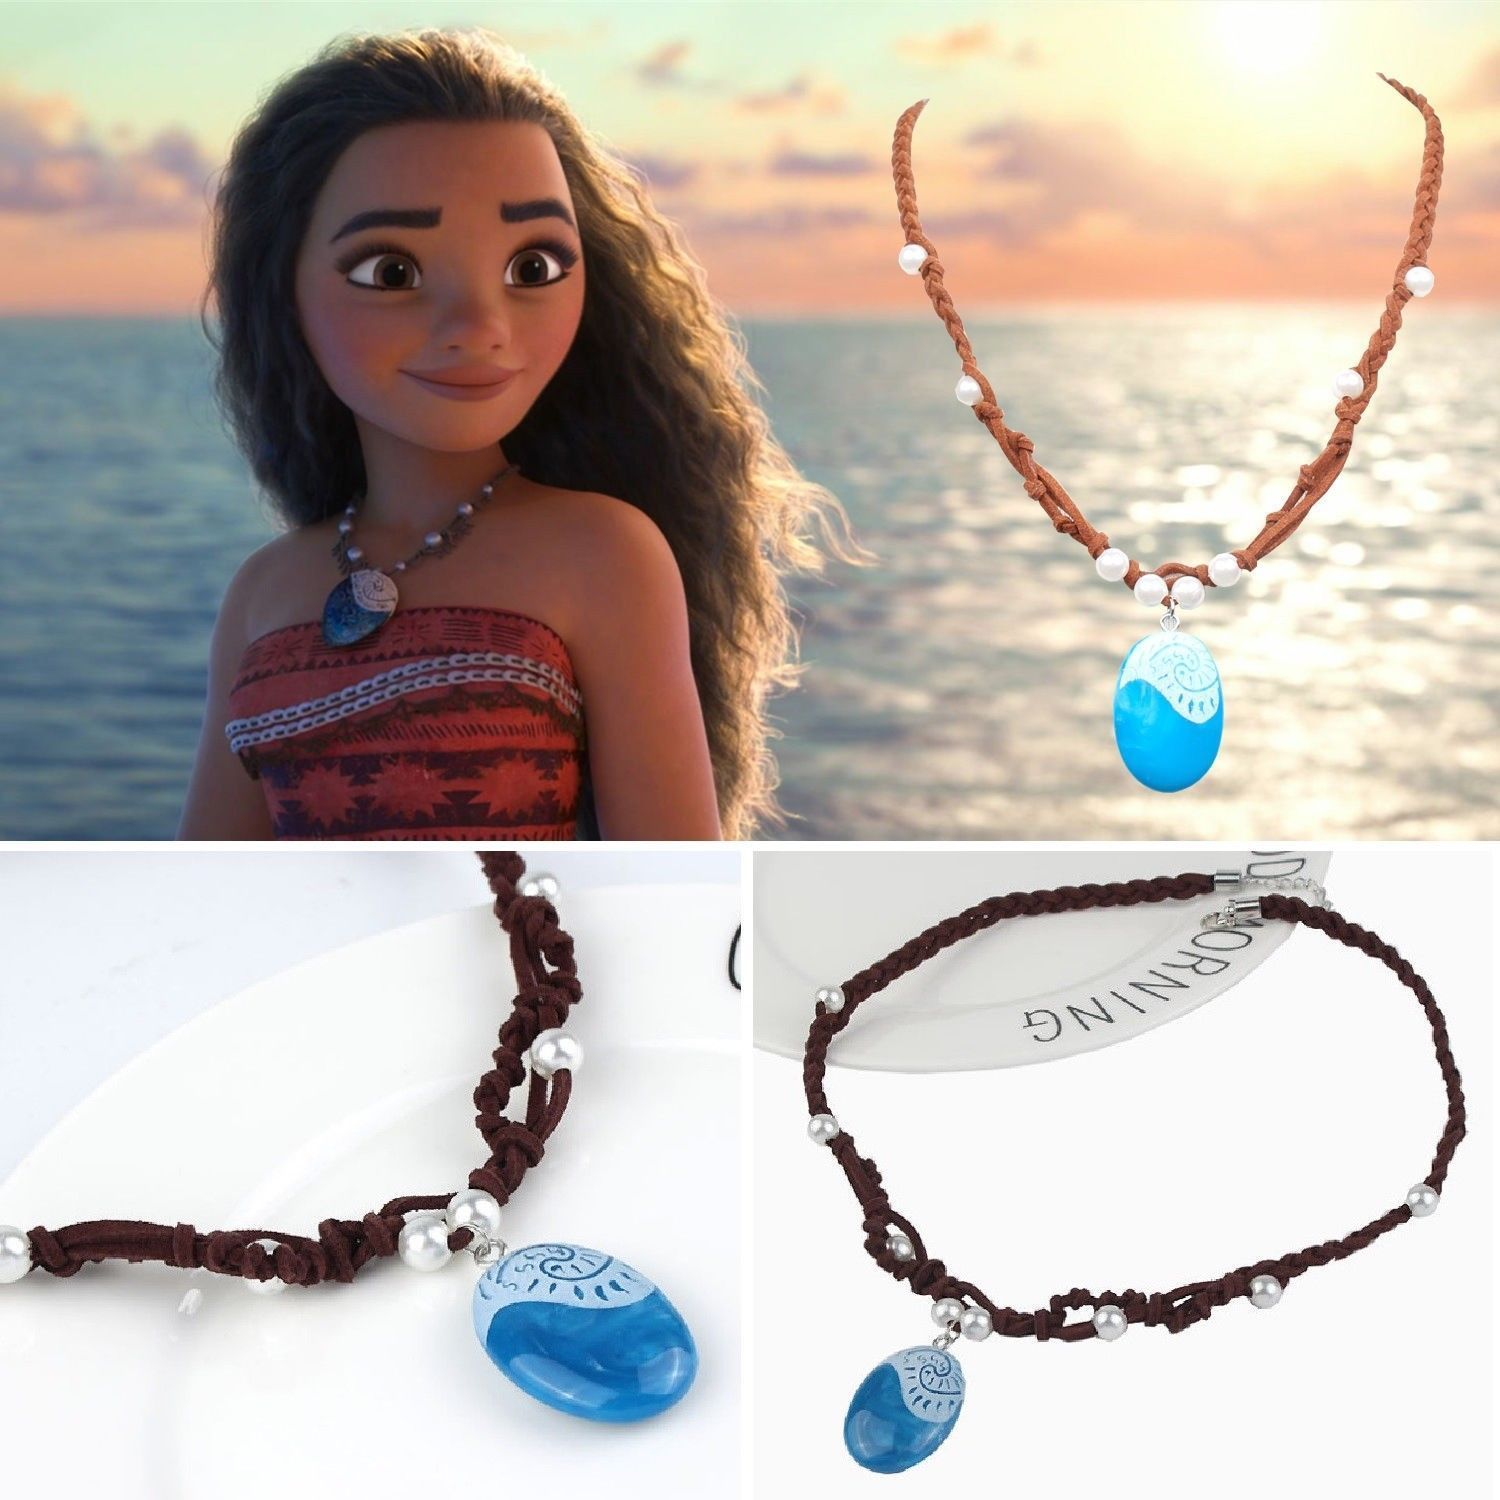 Moana Necklace Costume Cosplay Props Princess Heart of Te Fiti Girl Kid Necklace